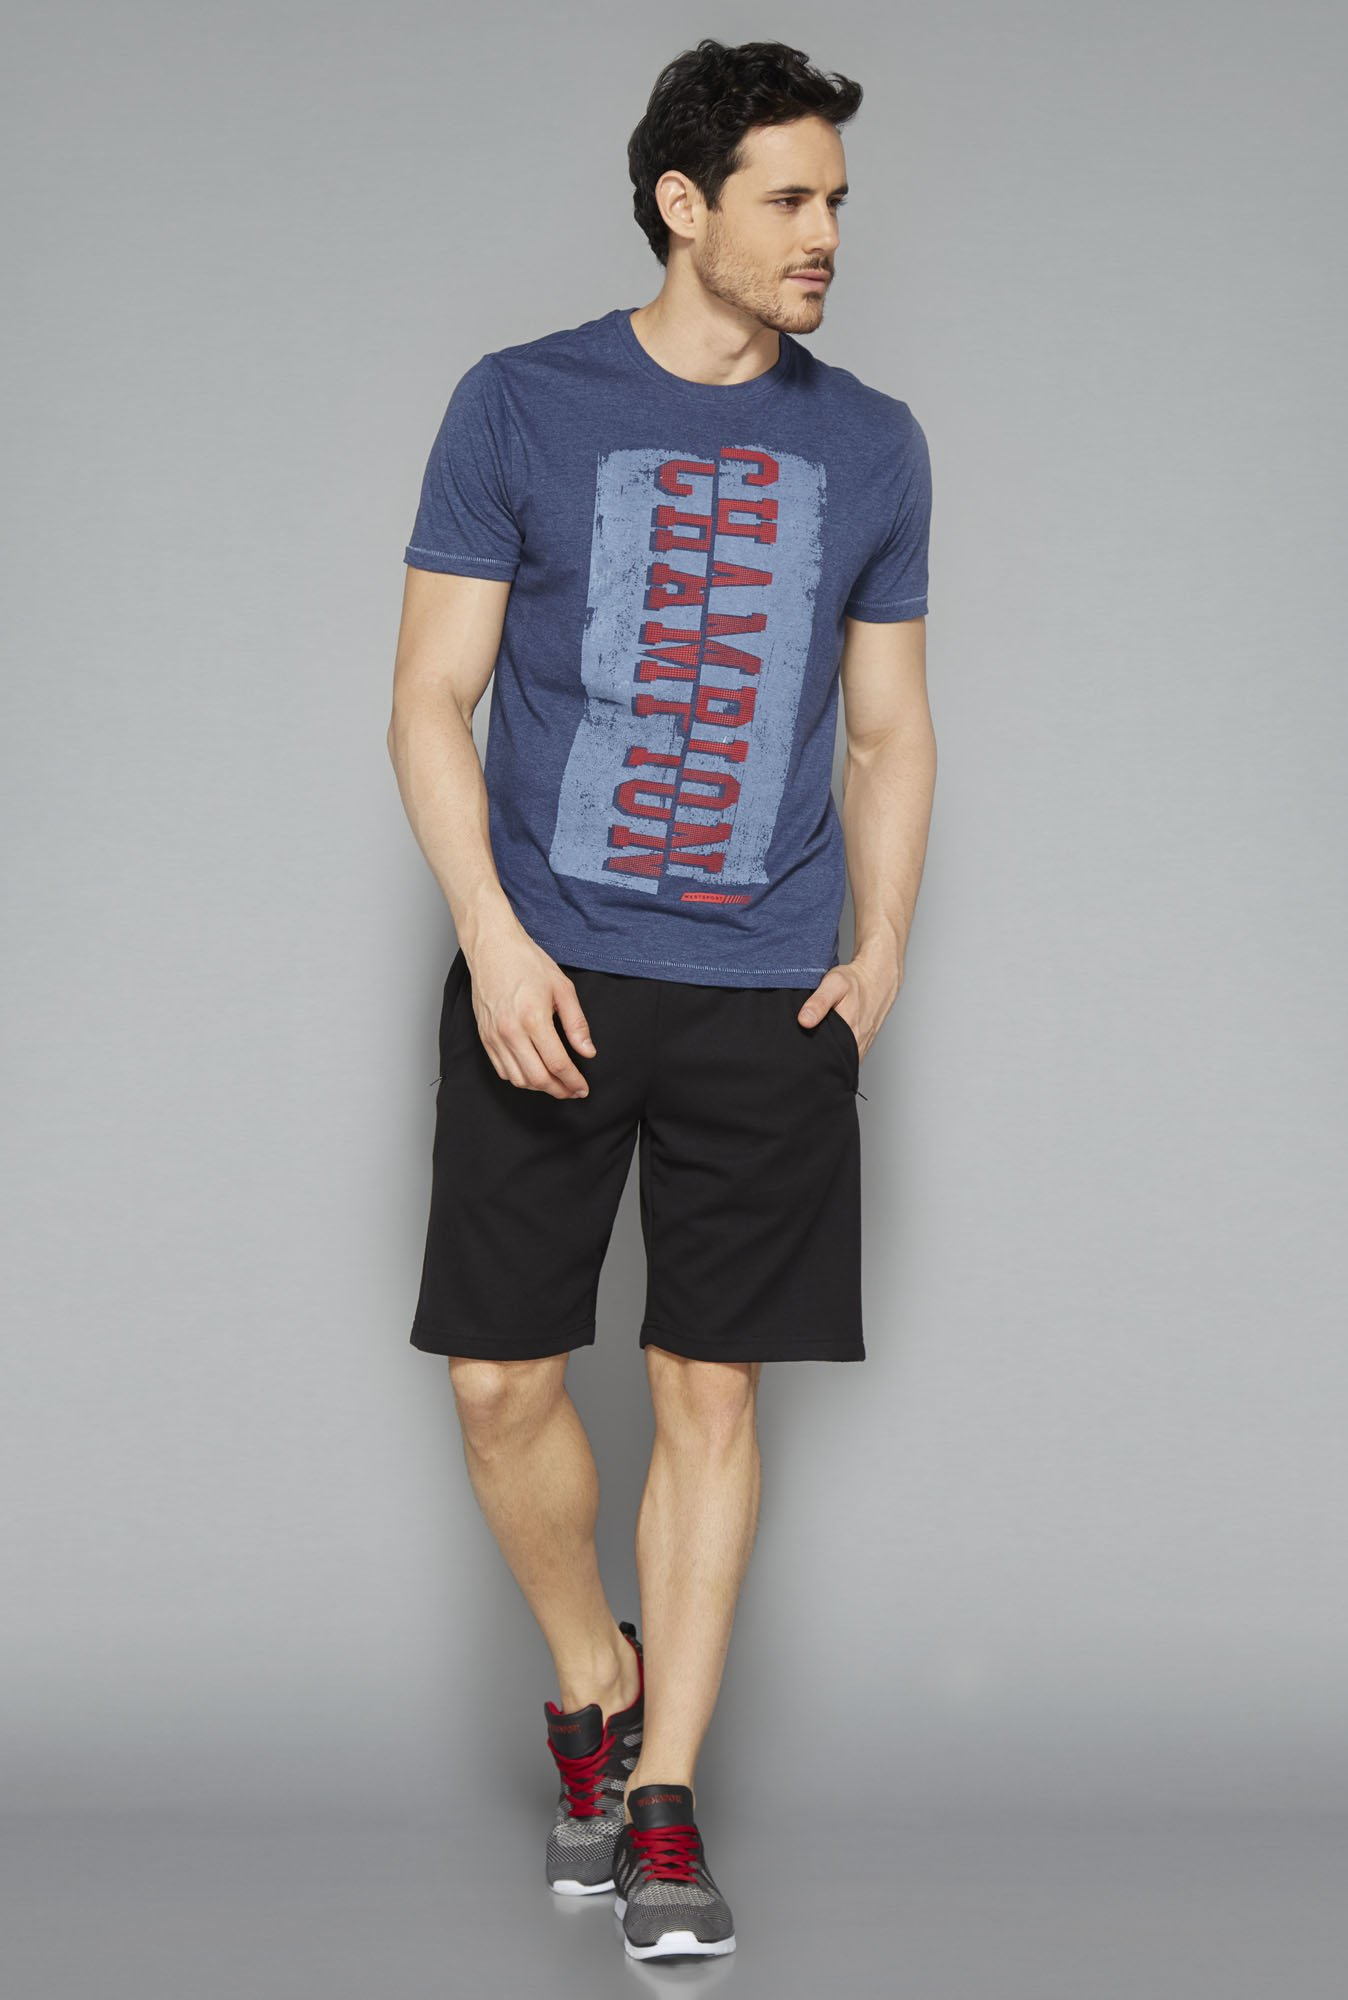 Westsport Active Navy Printed T Shirt